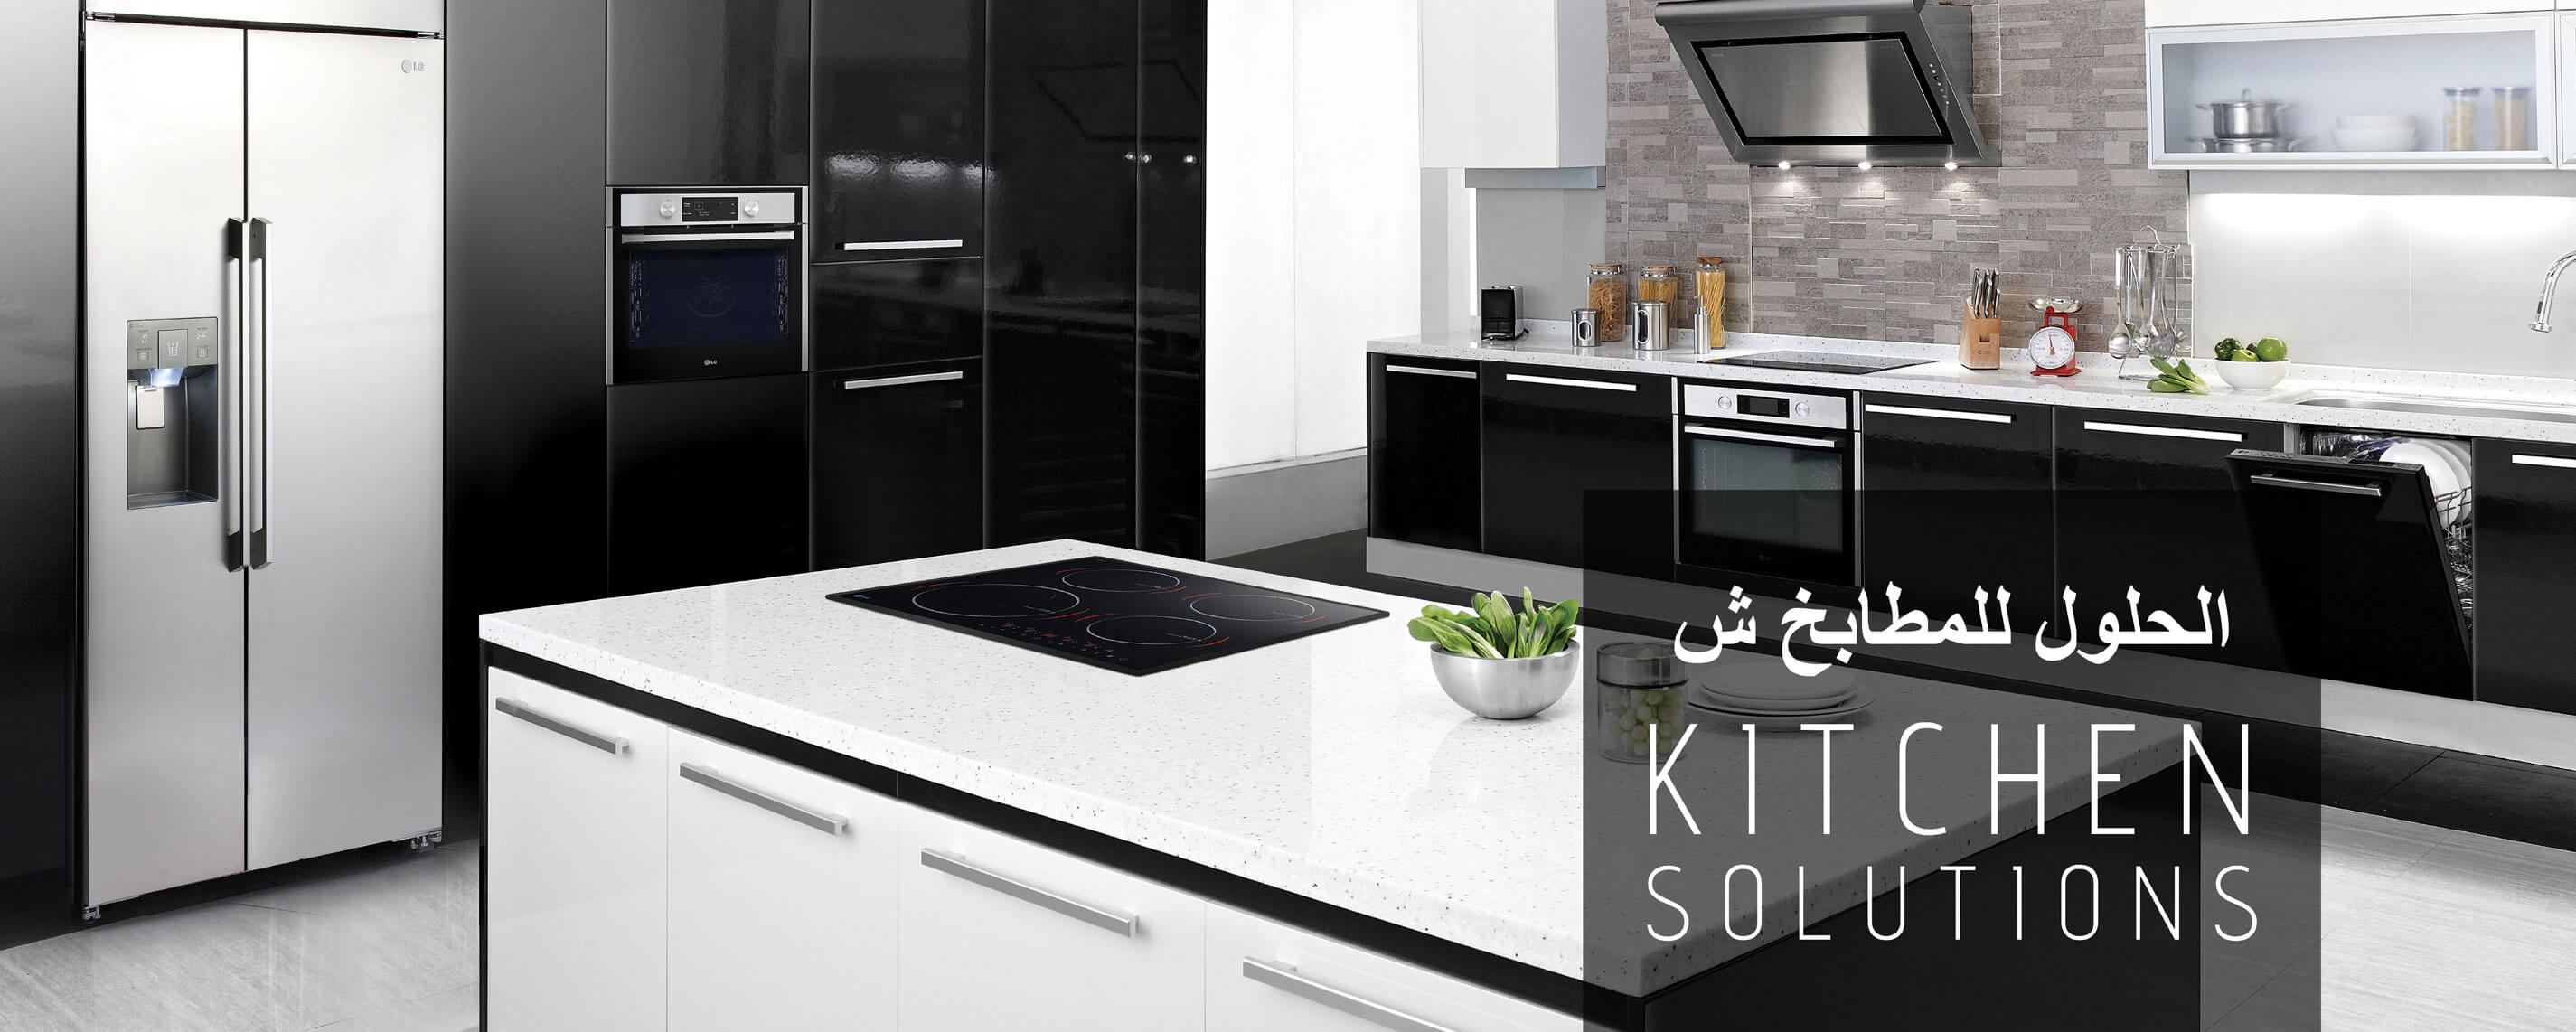 b2b - Kitchen Solutions